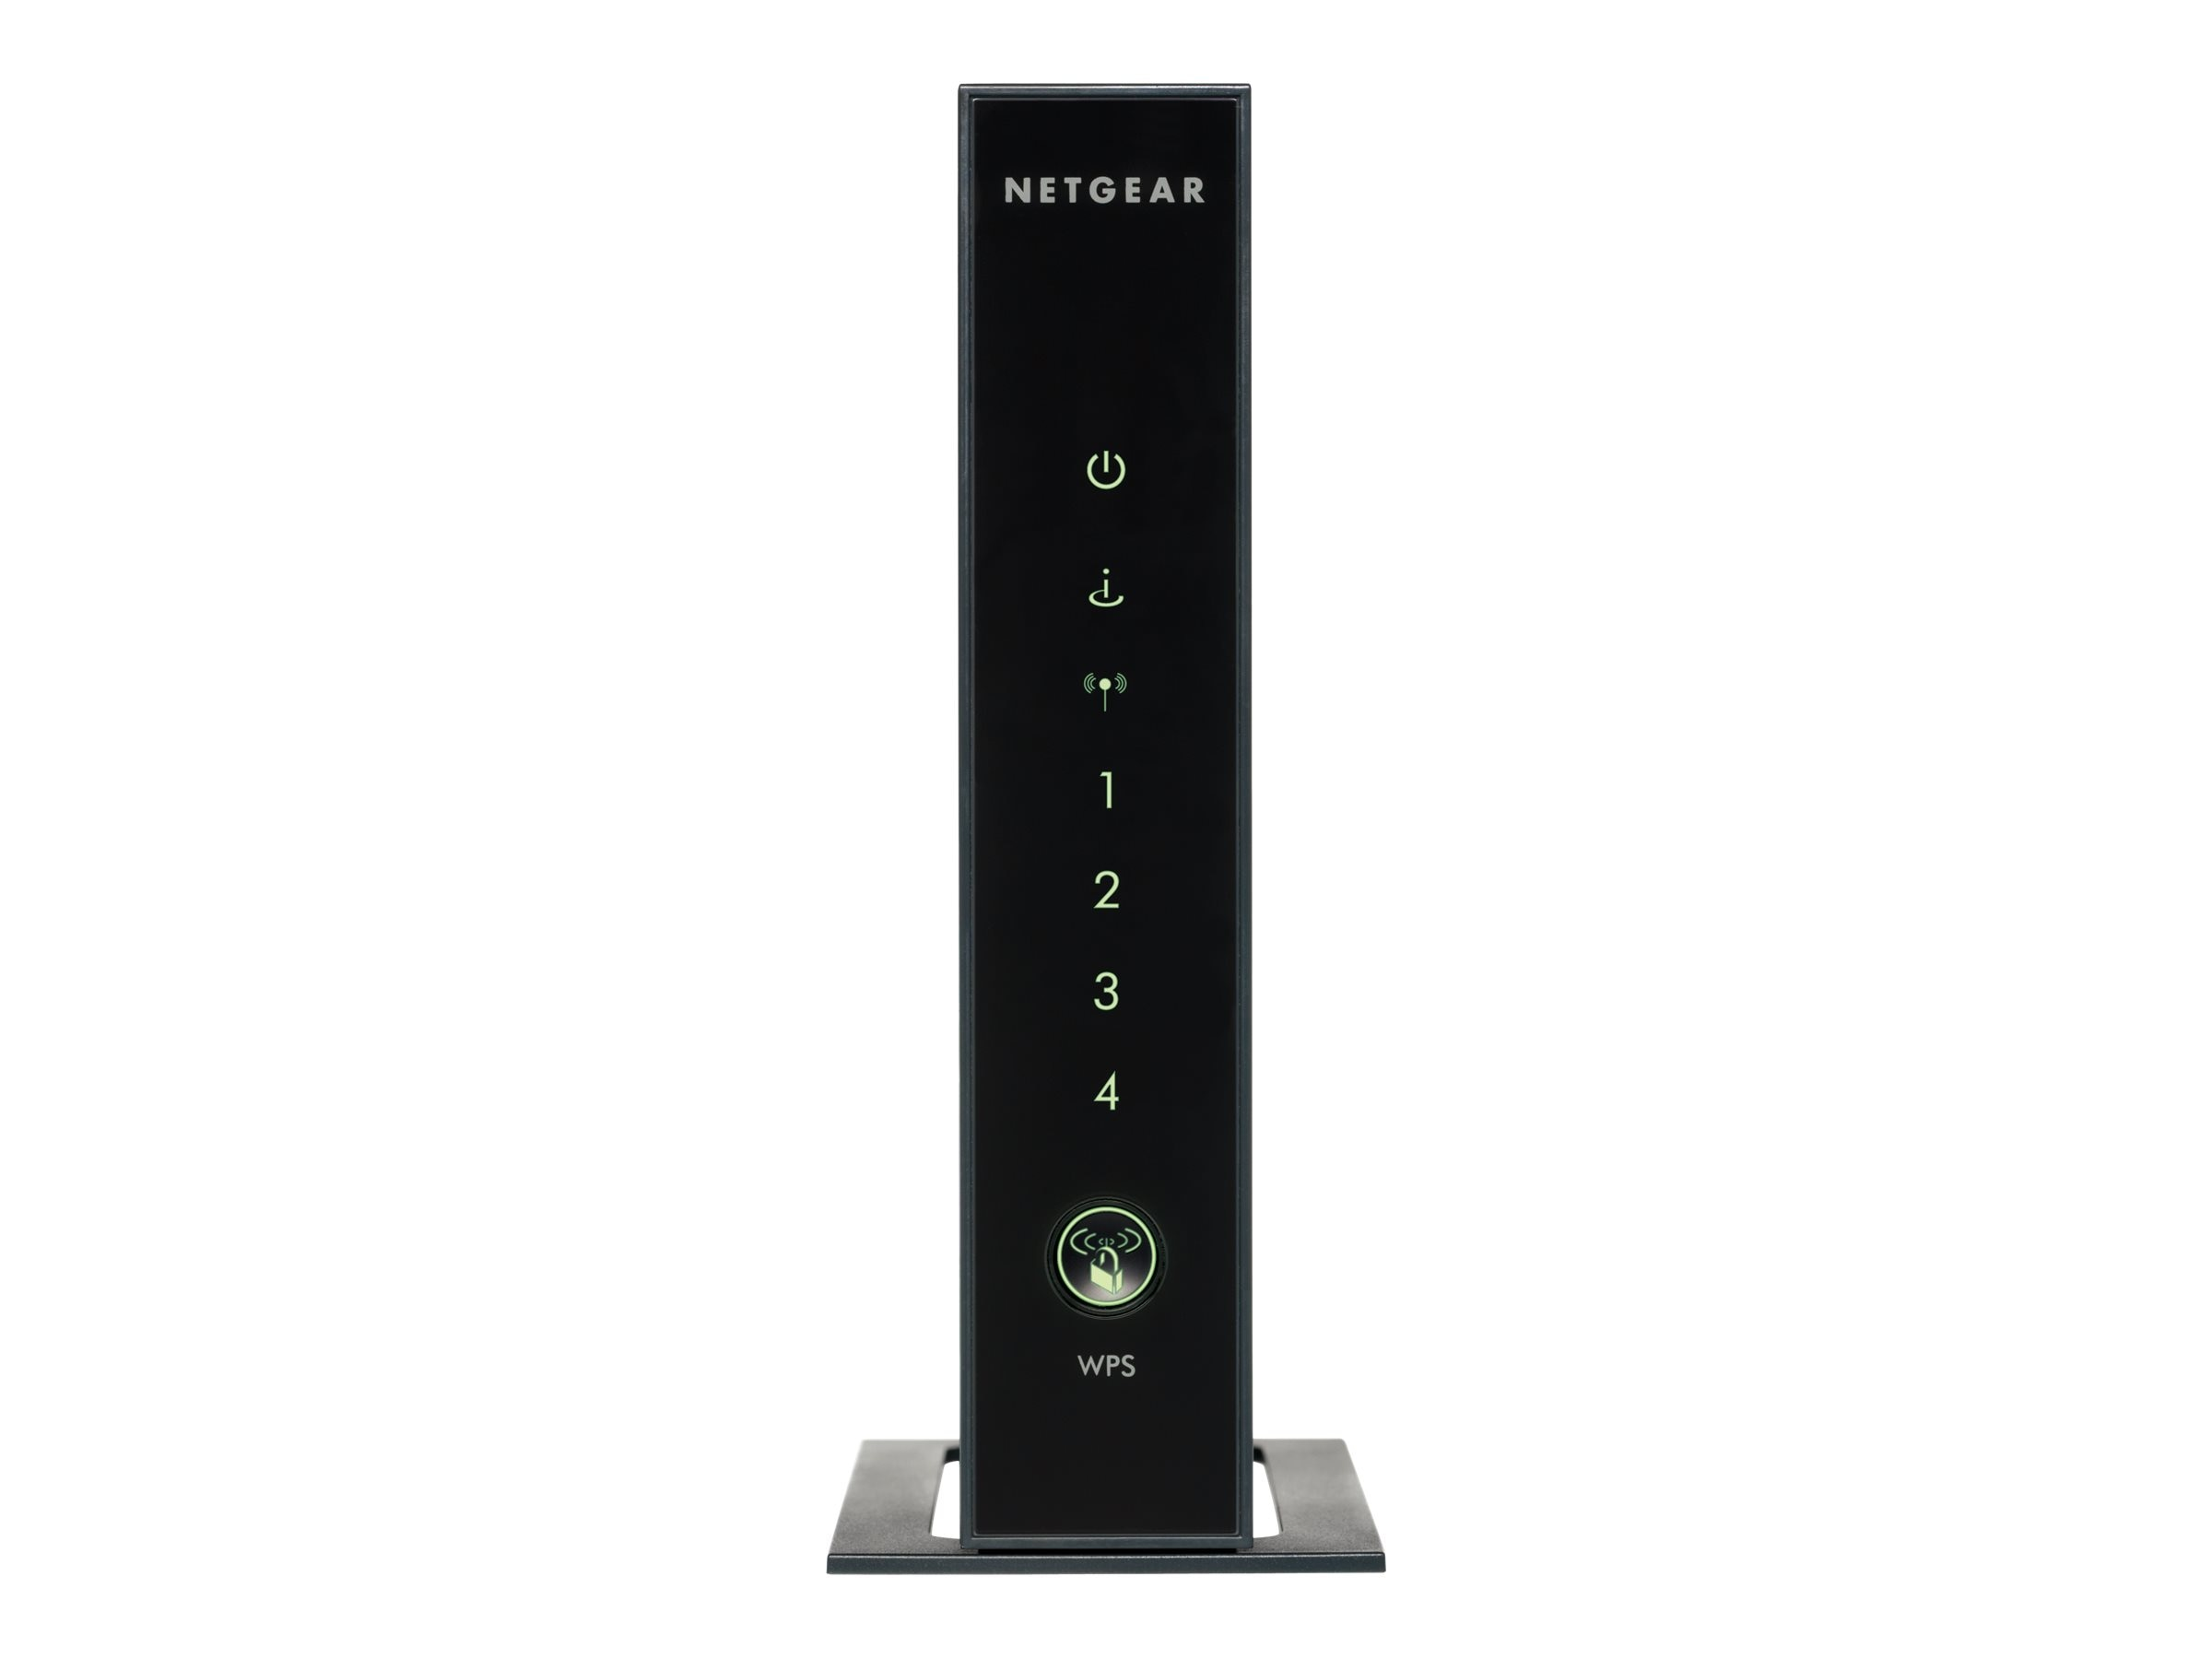 Netgear RangeMax Open Source Wireless N Router, WNR3500L-100NAS